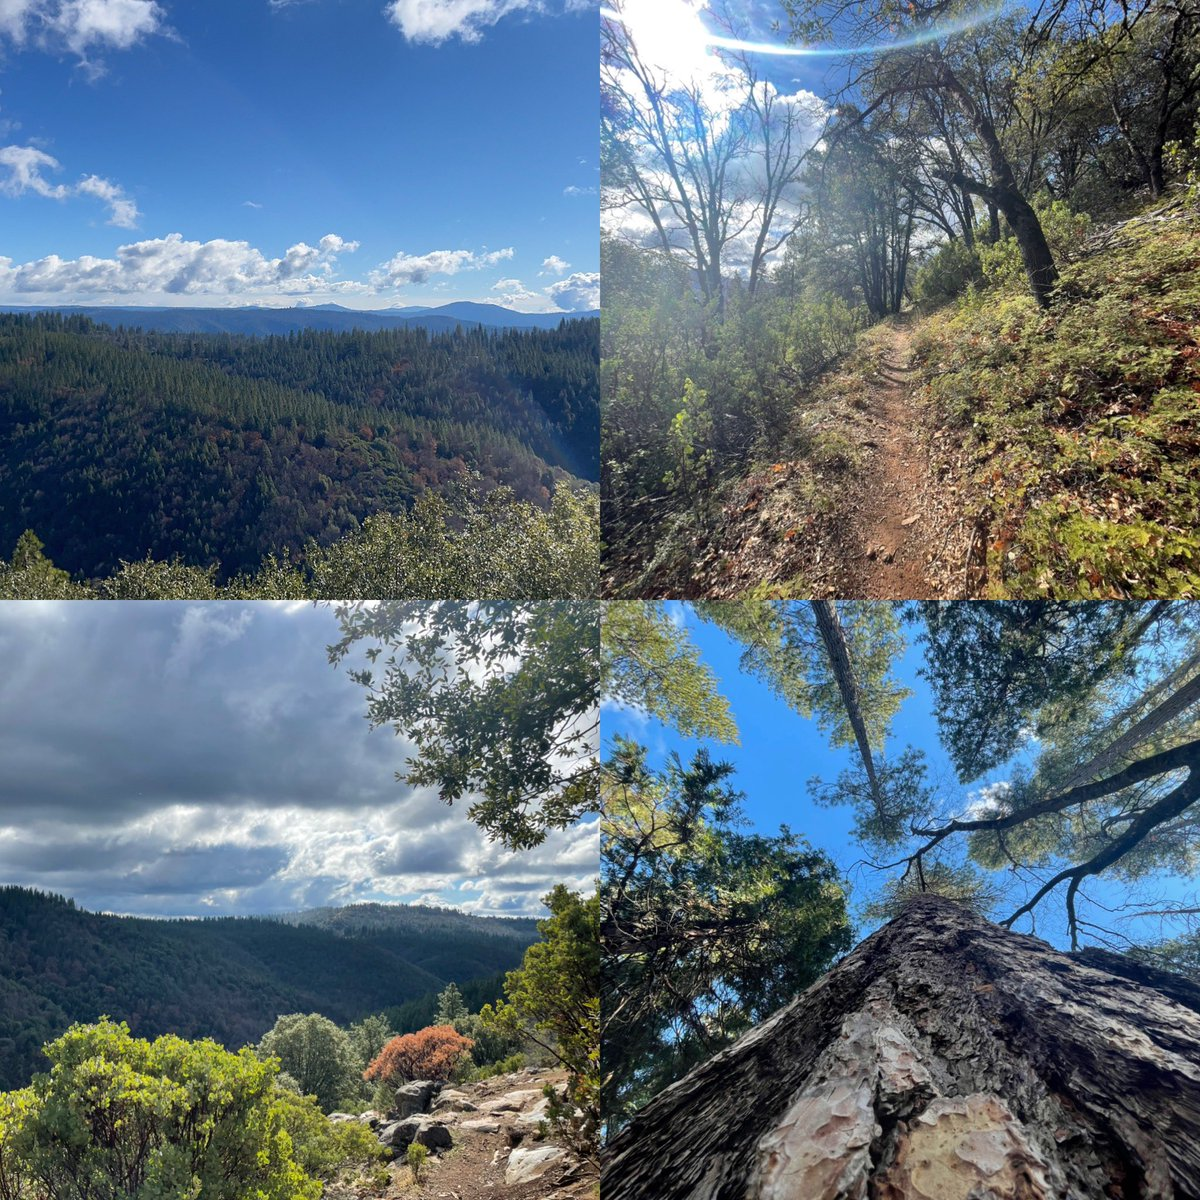 Yesterday hike of the Arnold Rim Trail. Great day to remove clutter from the mind. #naturephotography #hiking #hikingadventures #bluesky #breath #beautiful #California https://t.co/MZeUjGfOyG